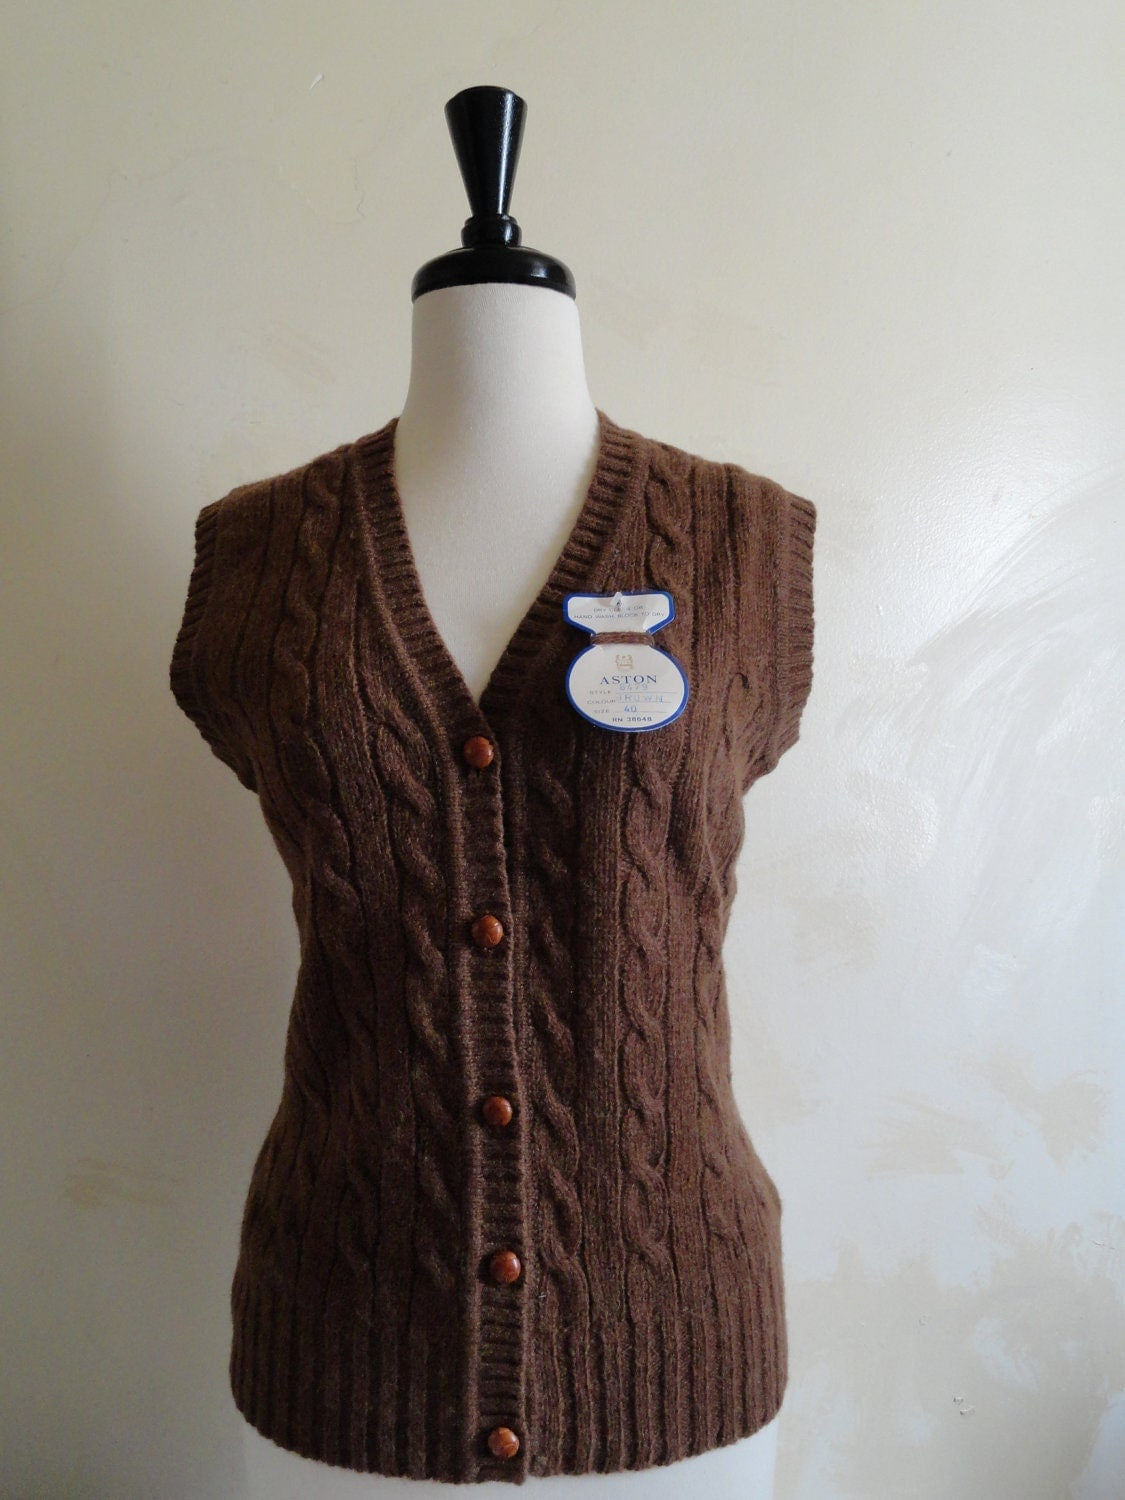 Vintage Aston Womens V Neck Cable Knit Sweater Vest Sheltland